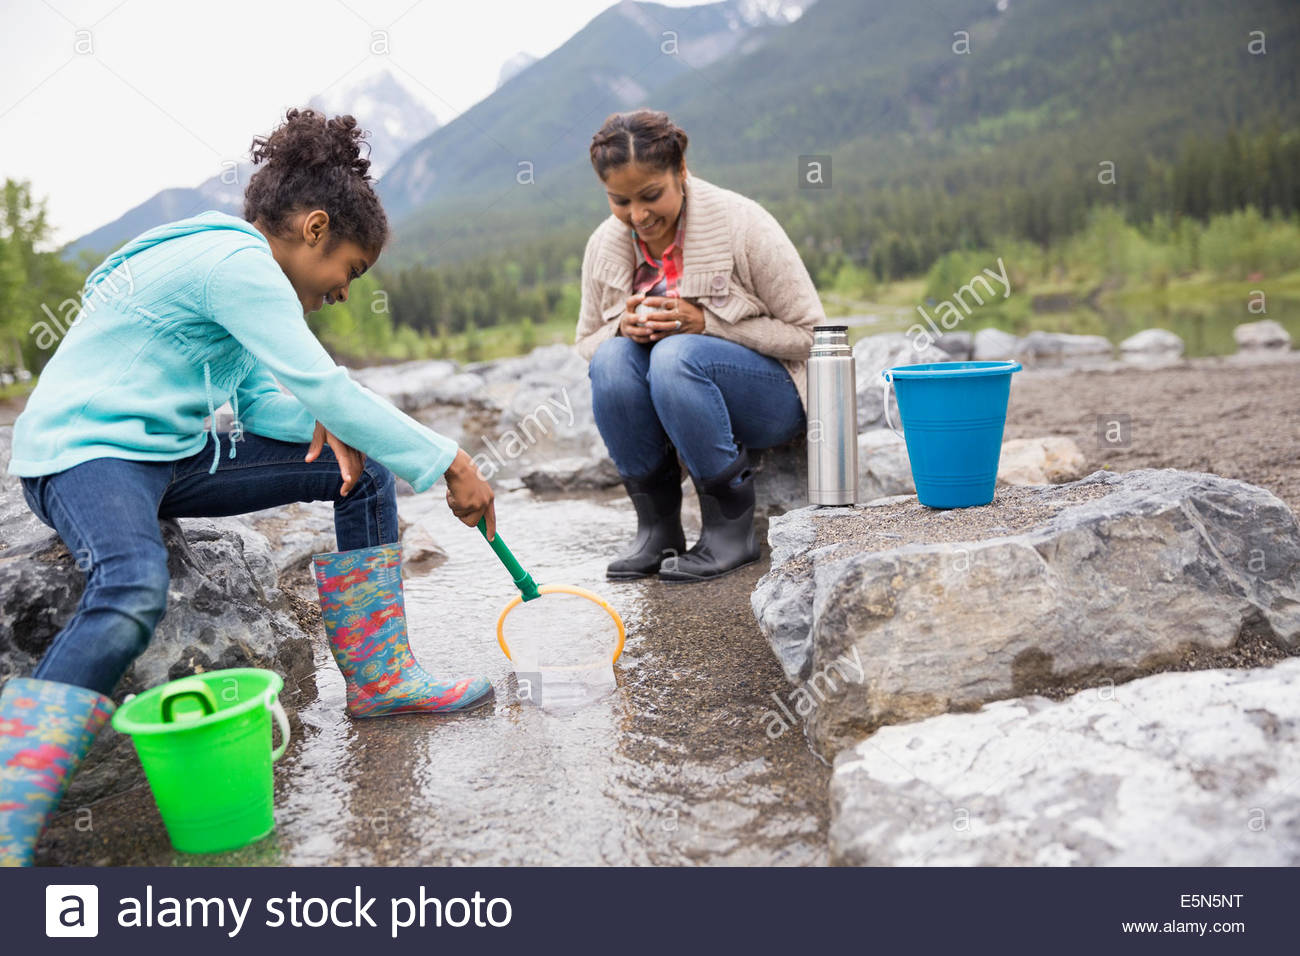 Mother and daughter fishing at stream - Stock Image